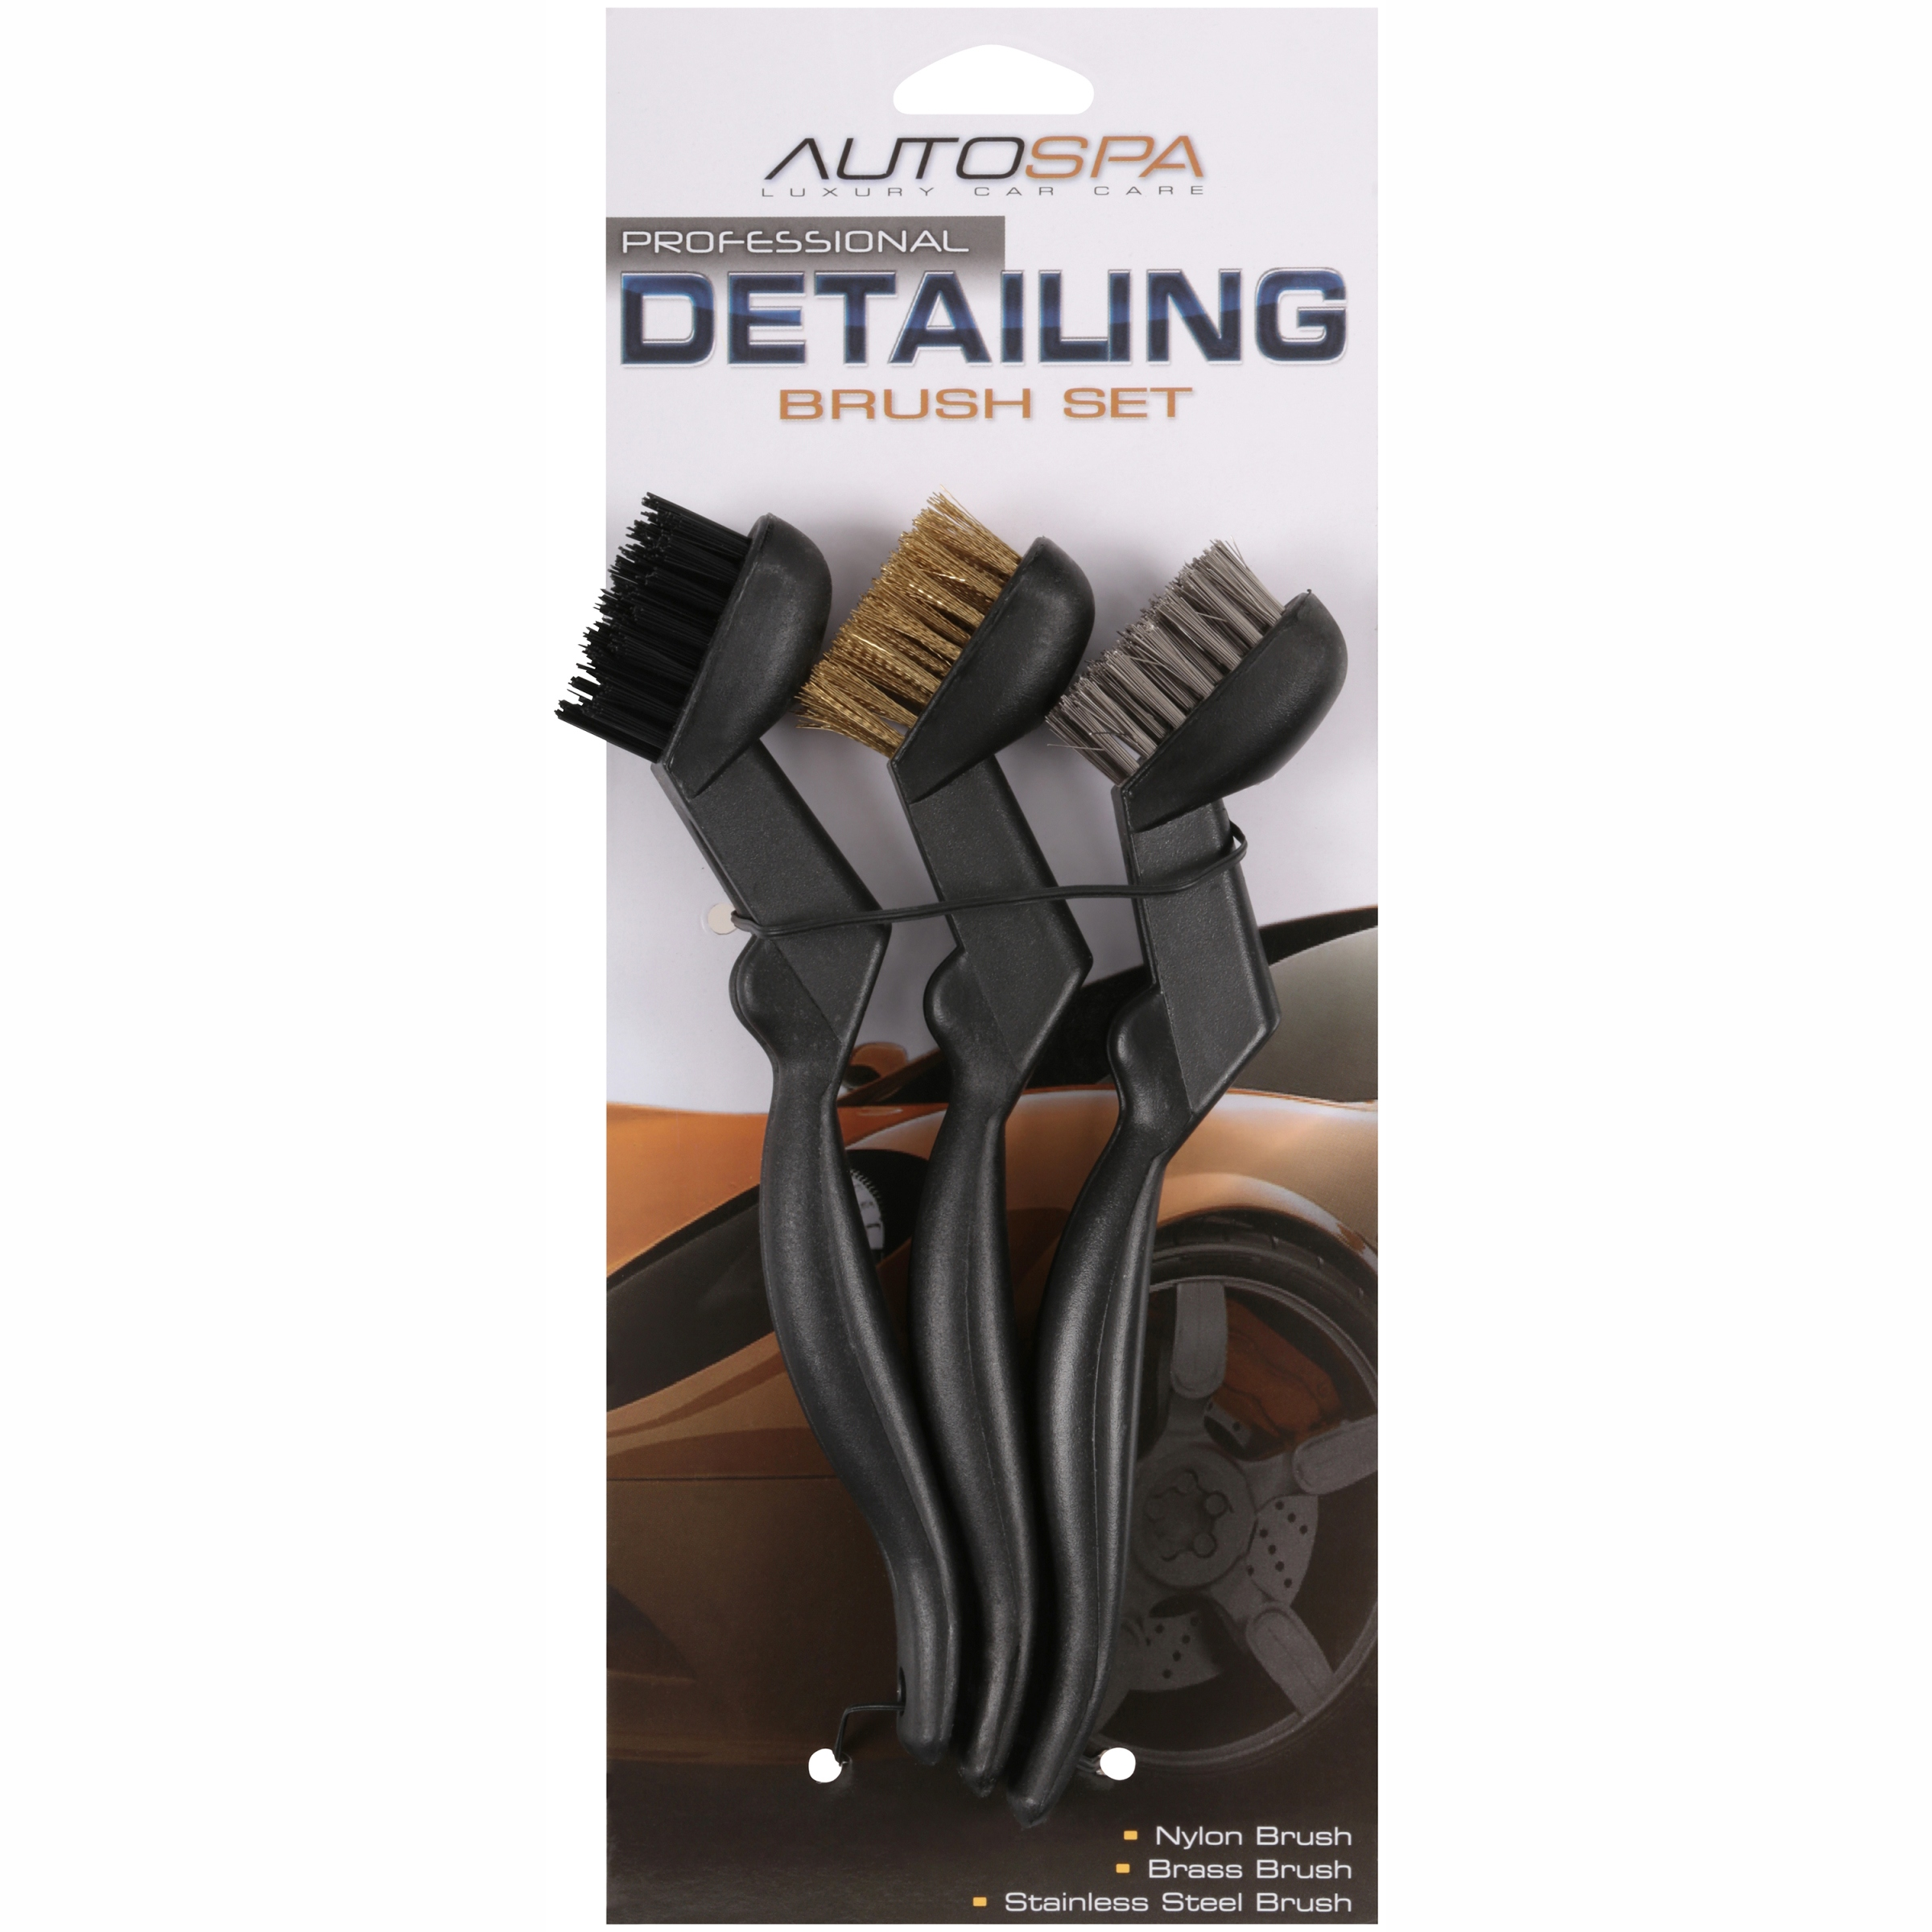 AutoSpa Professional Detailing Brush Set 3 pc Pack